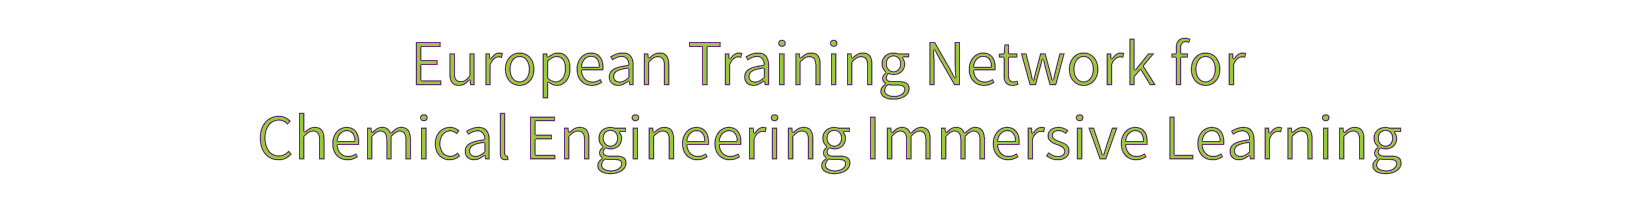 European Training Network for Chemical Engineering Immersive Learning